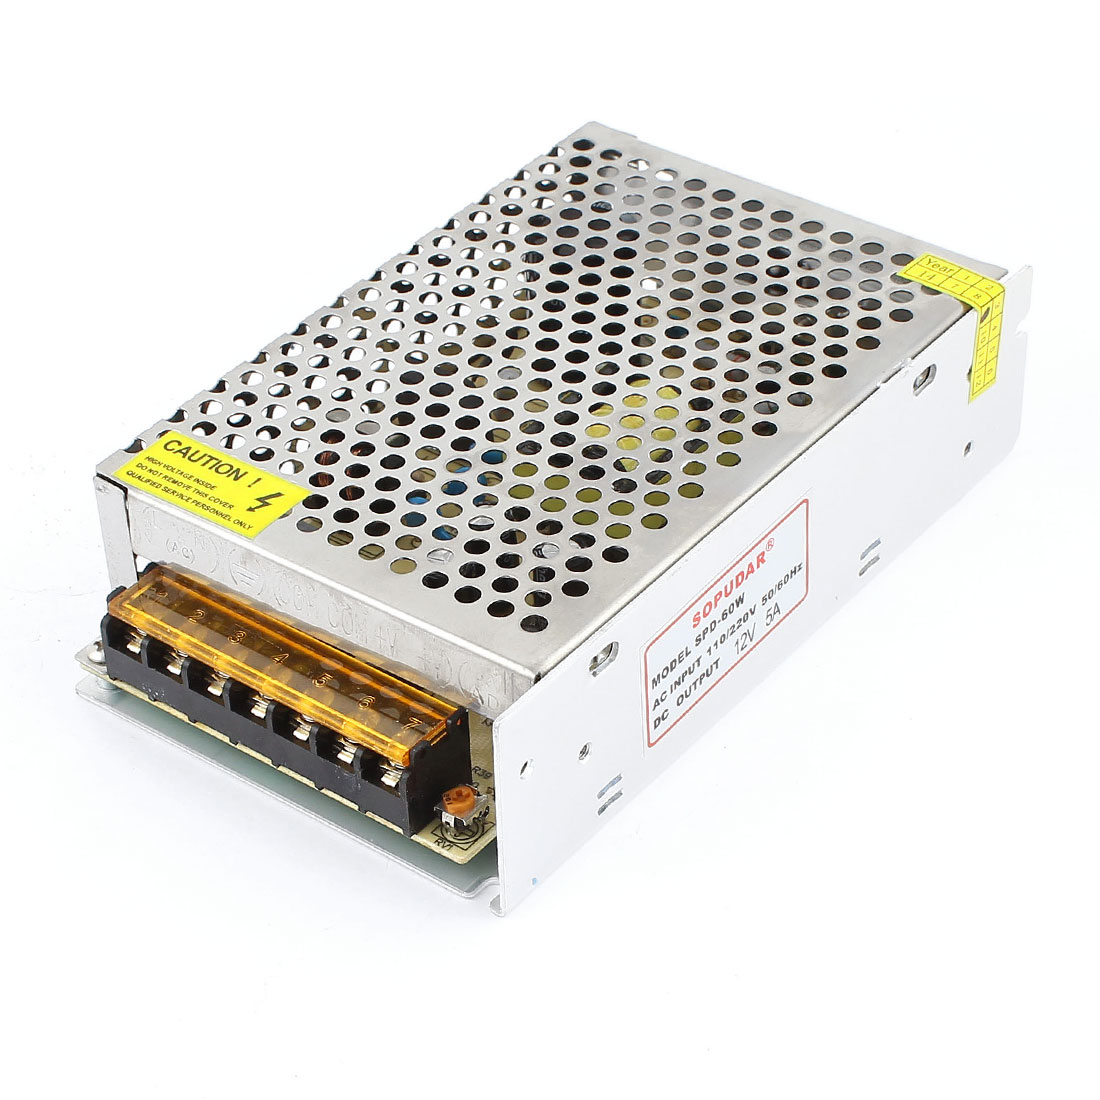 SPD-60W AC 110V/220V to DC 12V 5A LED Switching Power Supply